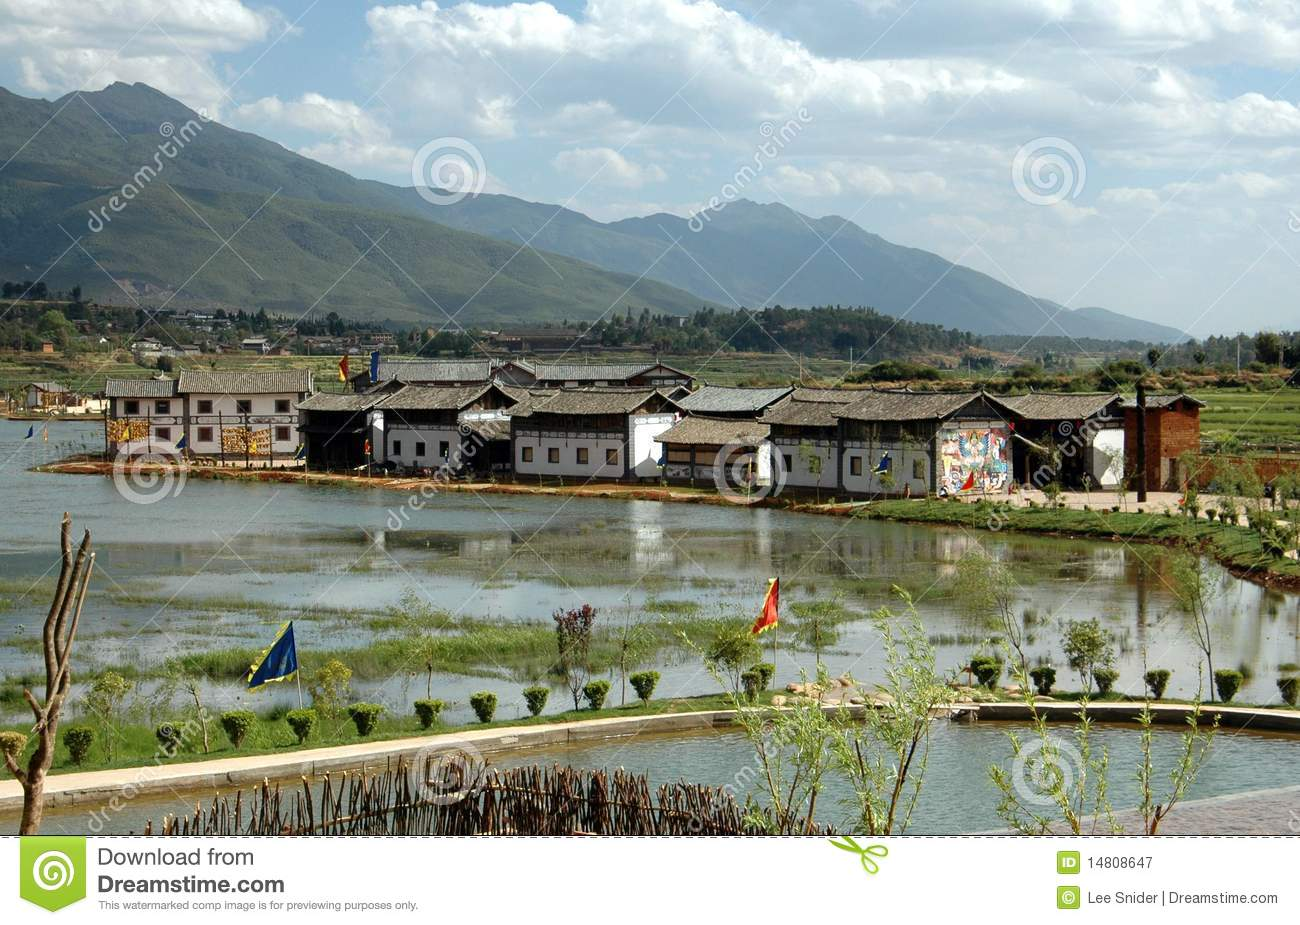 singles in china village Search for real estate in shanghai, china and find real estate listings in shanghai, china homes for sale in shanghai, china on wwwcentury21globalcom get details of properties and view.